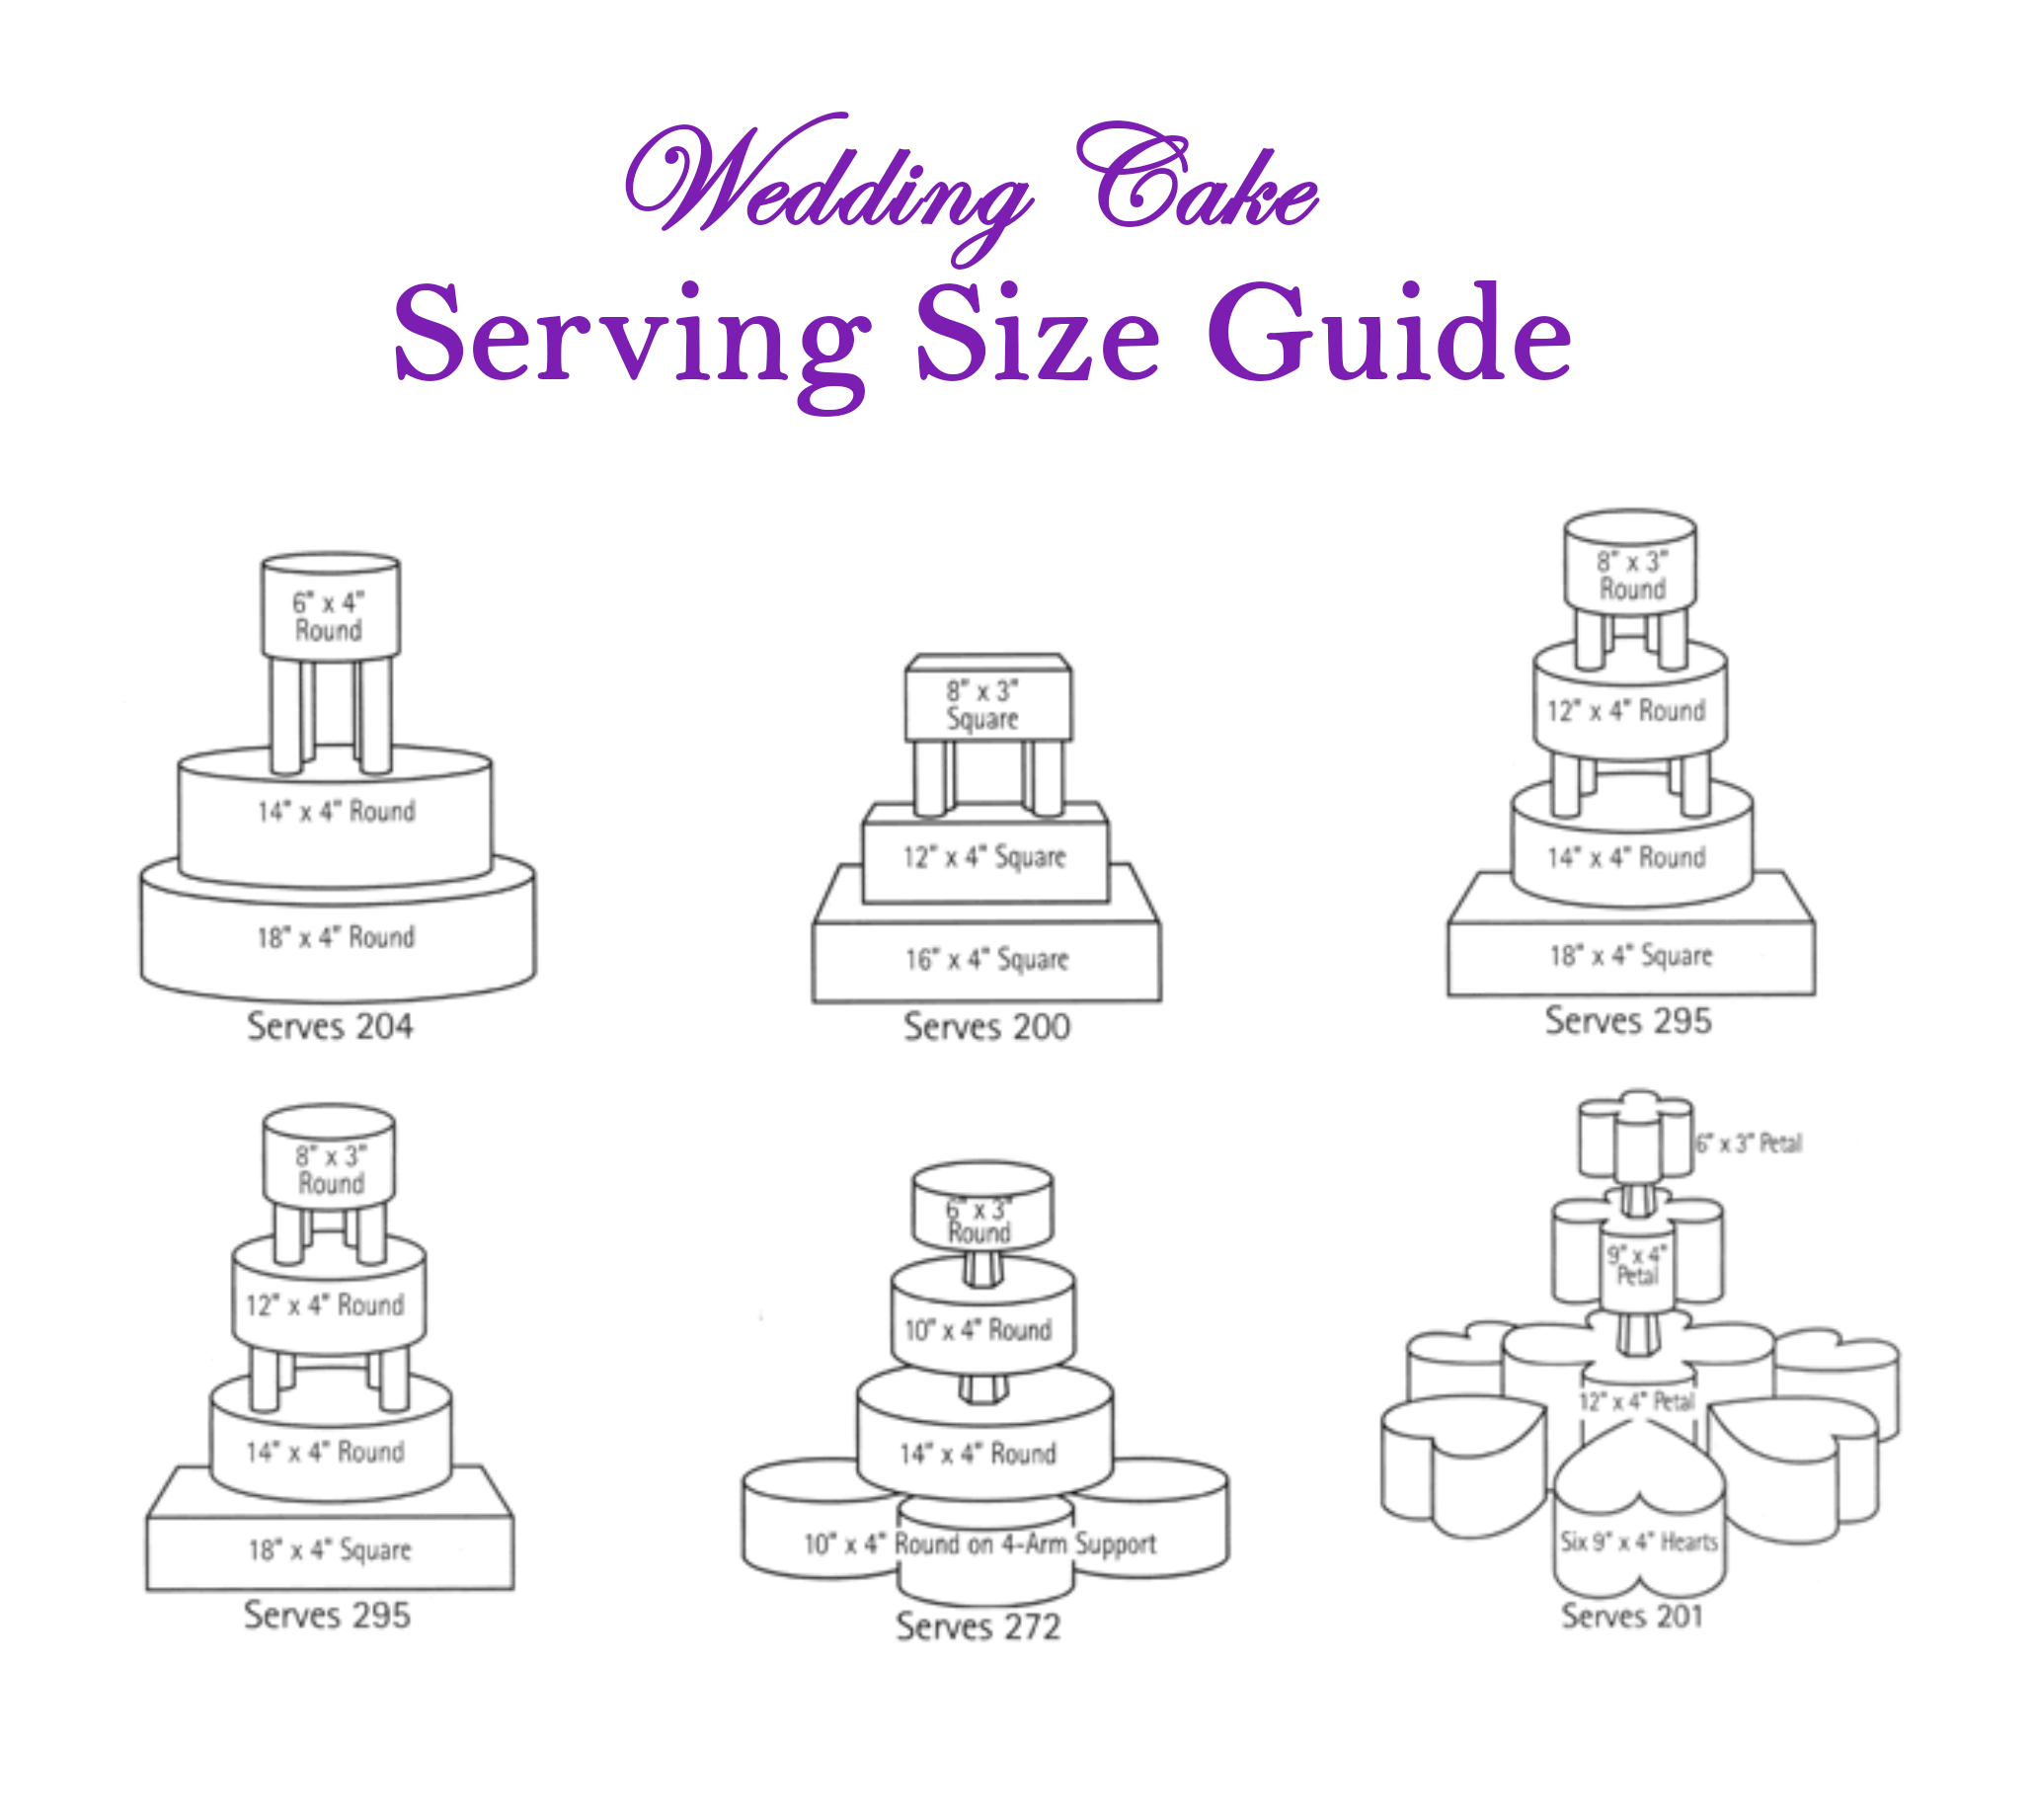 Wedding Cake Serving Size Guide from www.Wilton.com